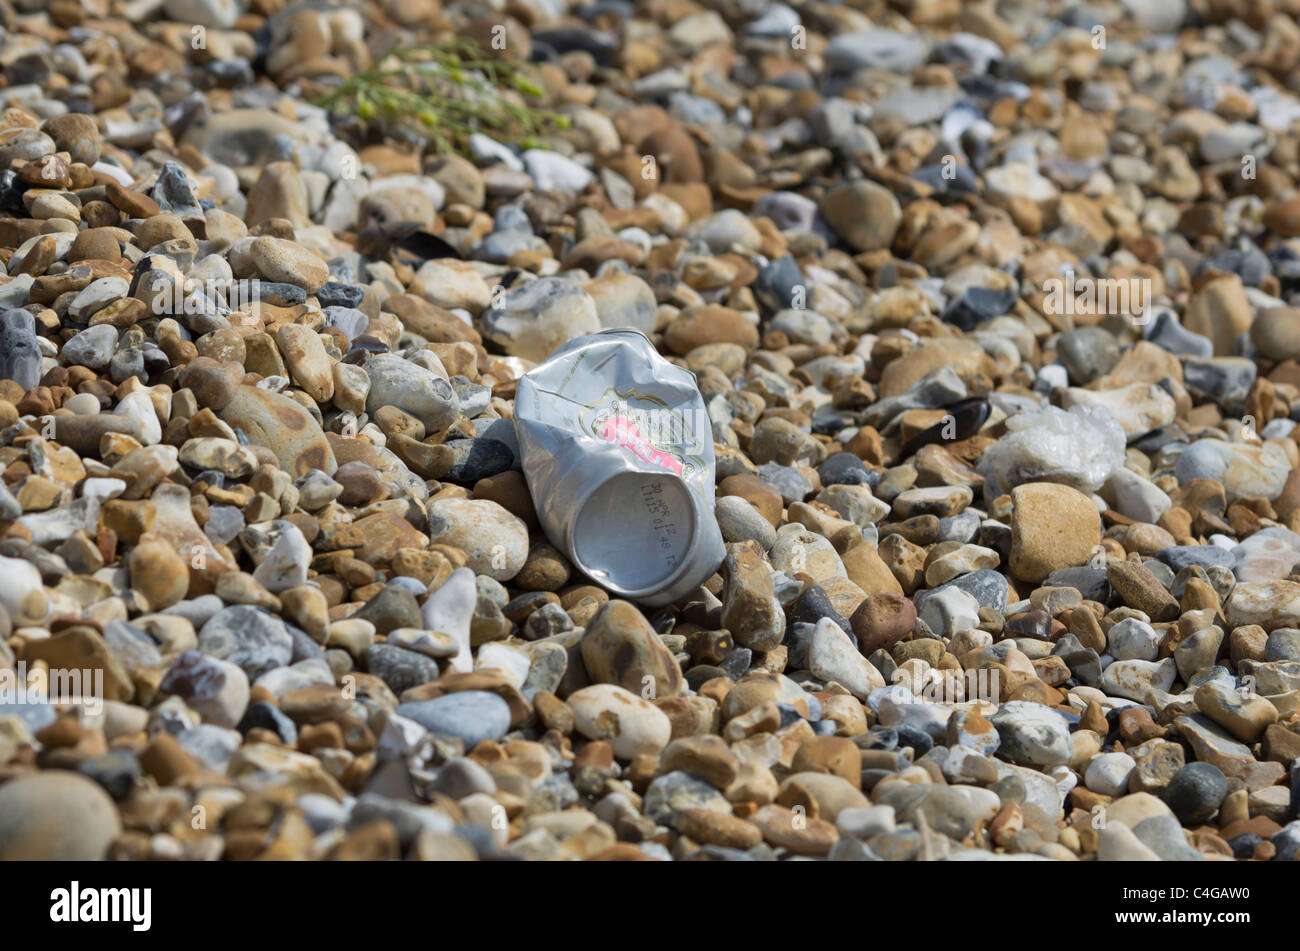 soft drink can washed up on pebble beach a Pevensey Bay East Sussex England - Stock Image